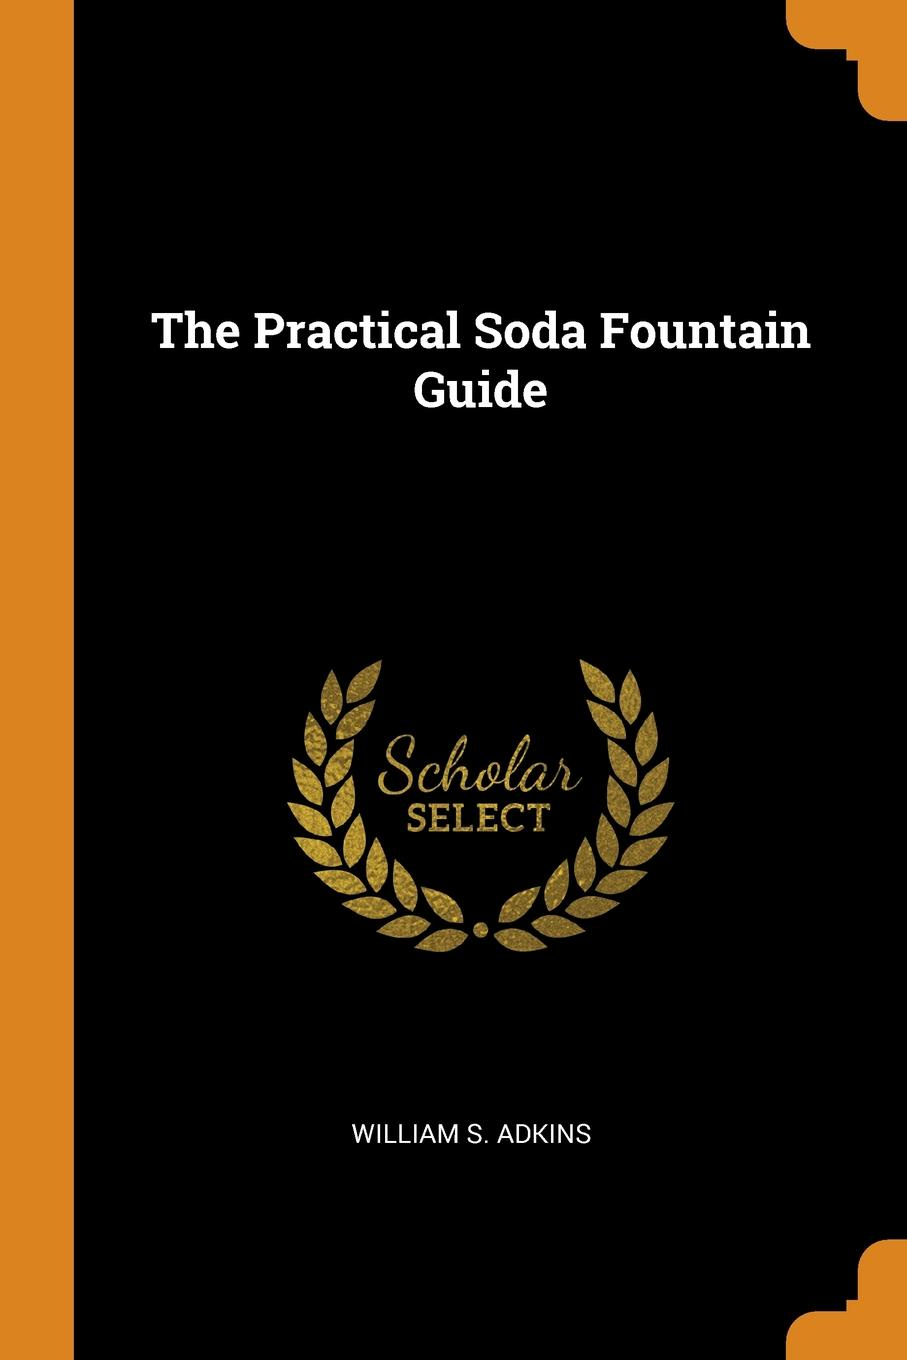 William S. Adkins The Practical Soda Fountain Guide